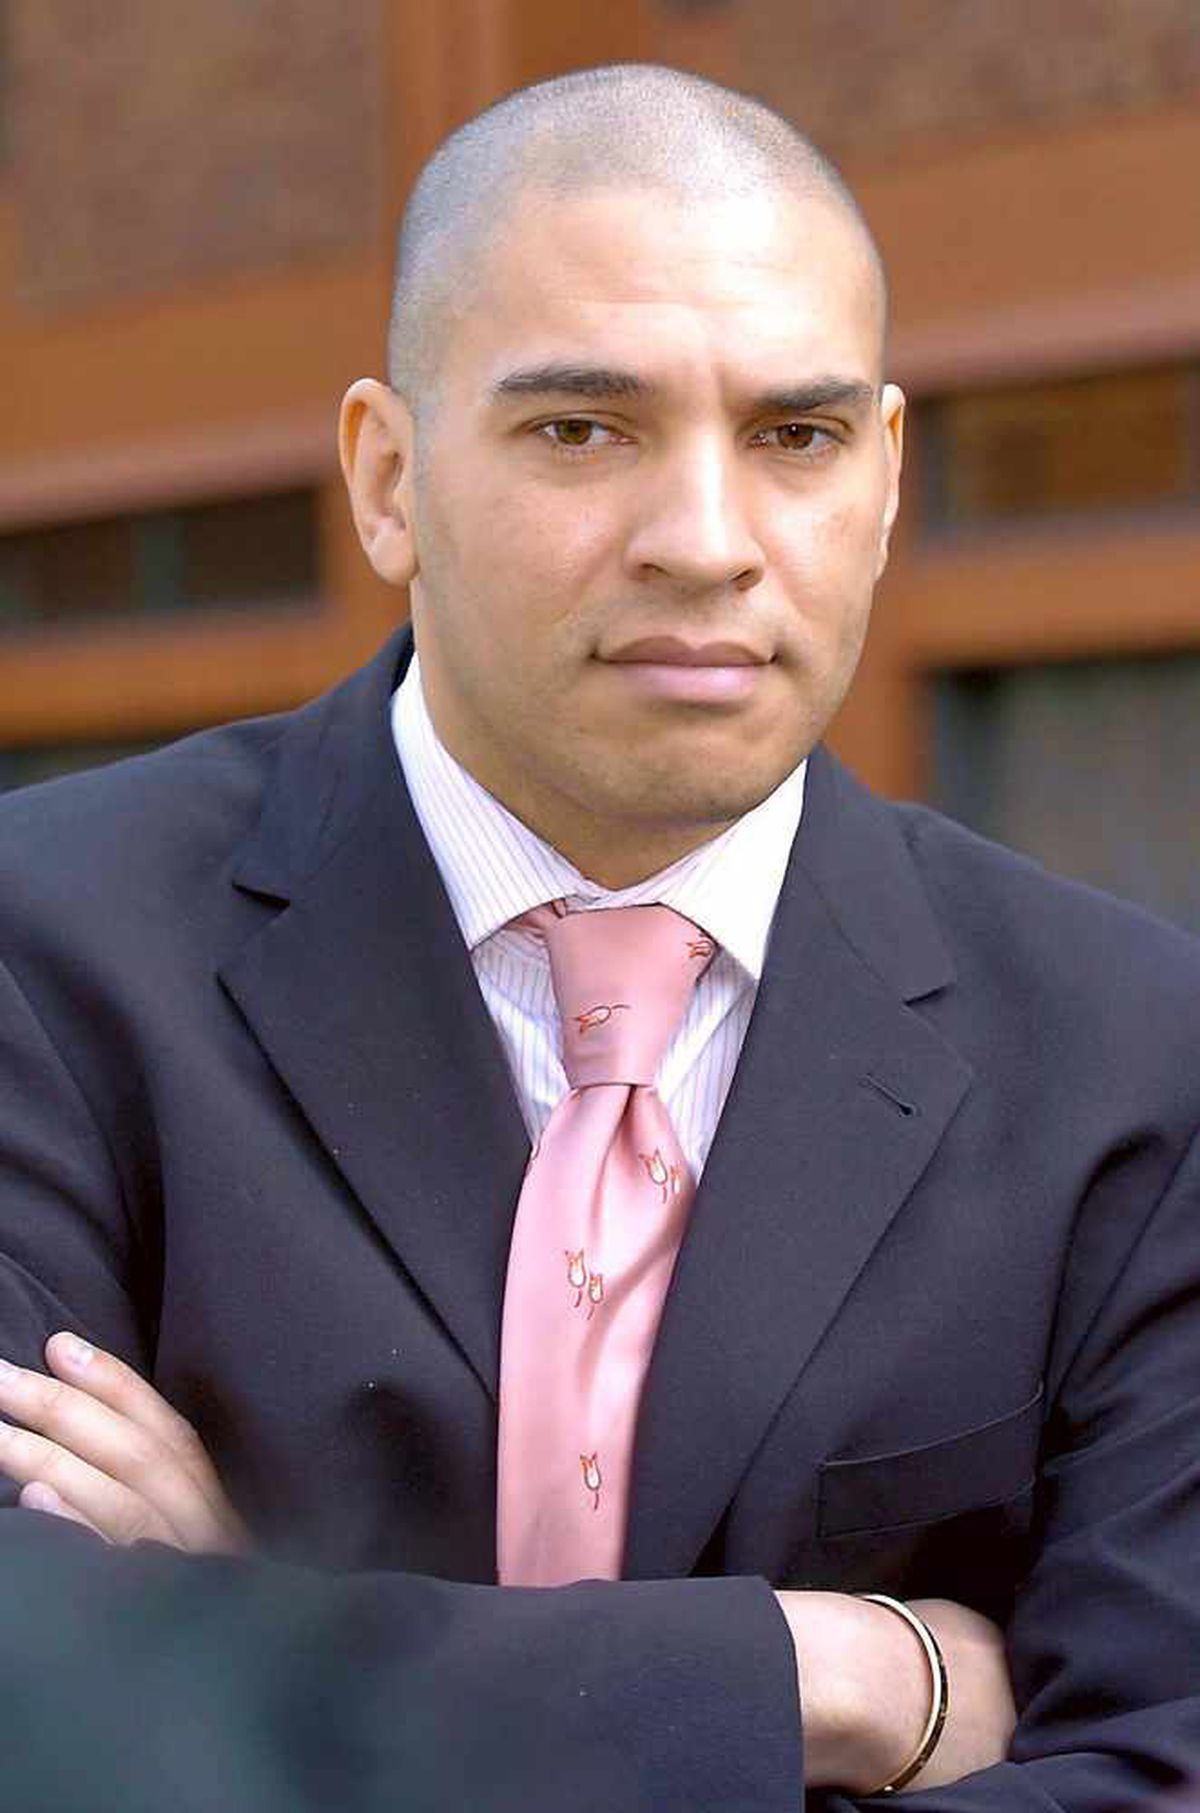 Ex-soccer star Stan Collymore